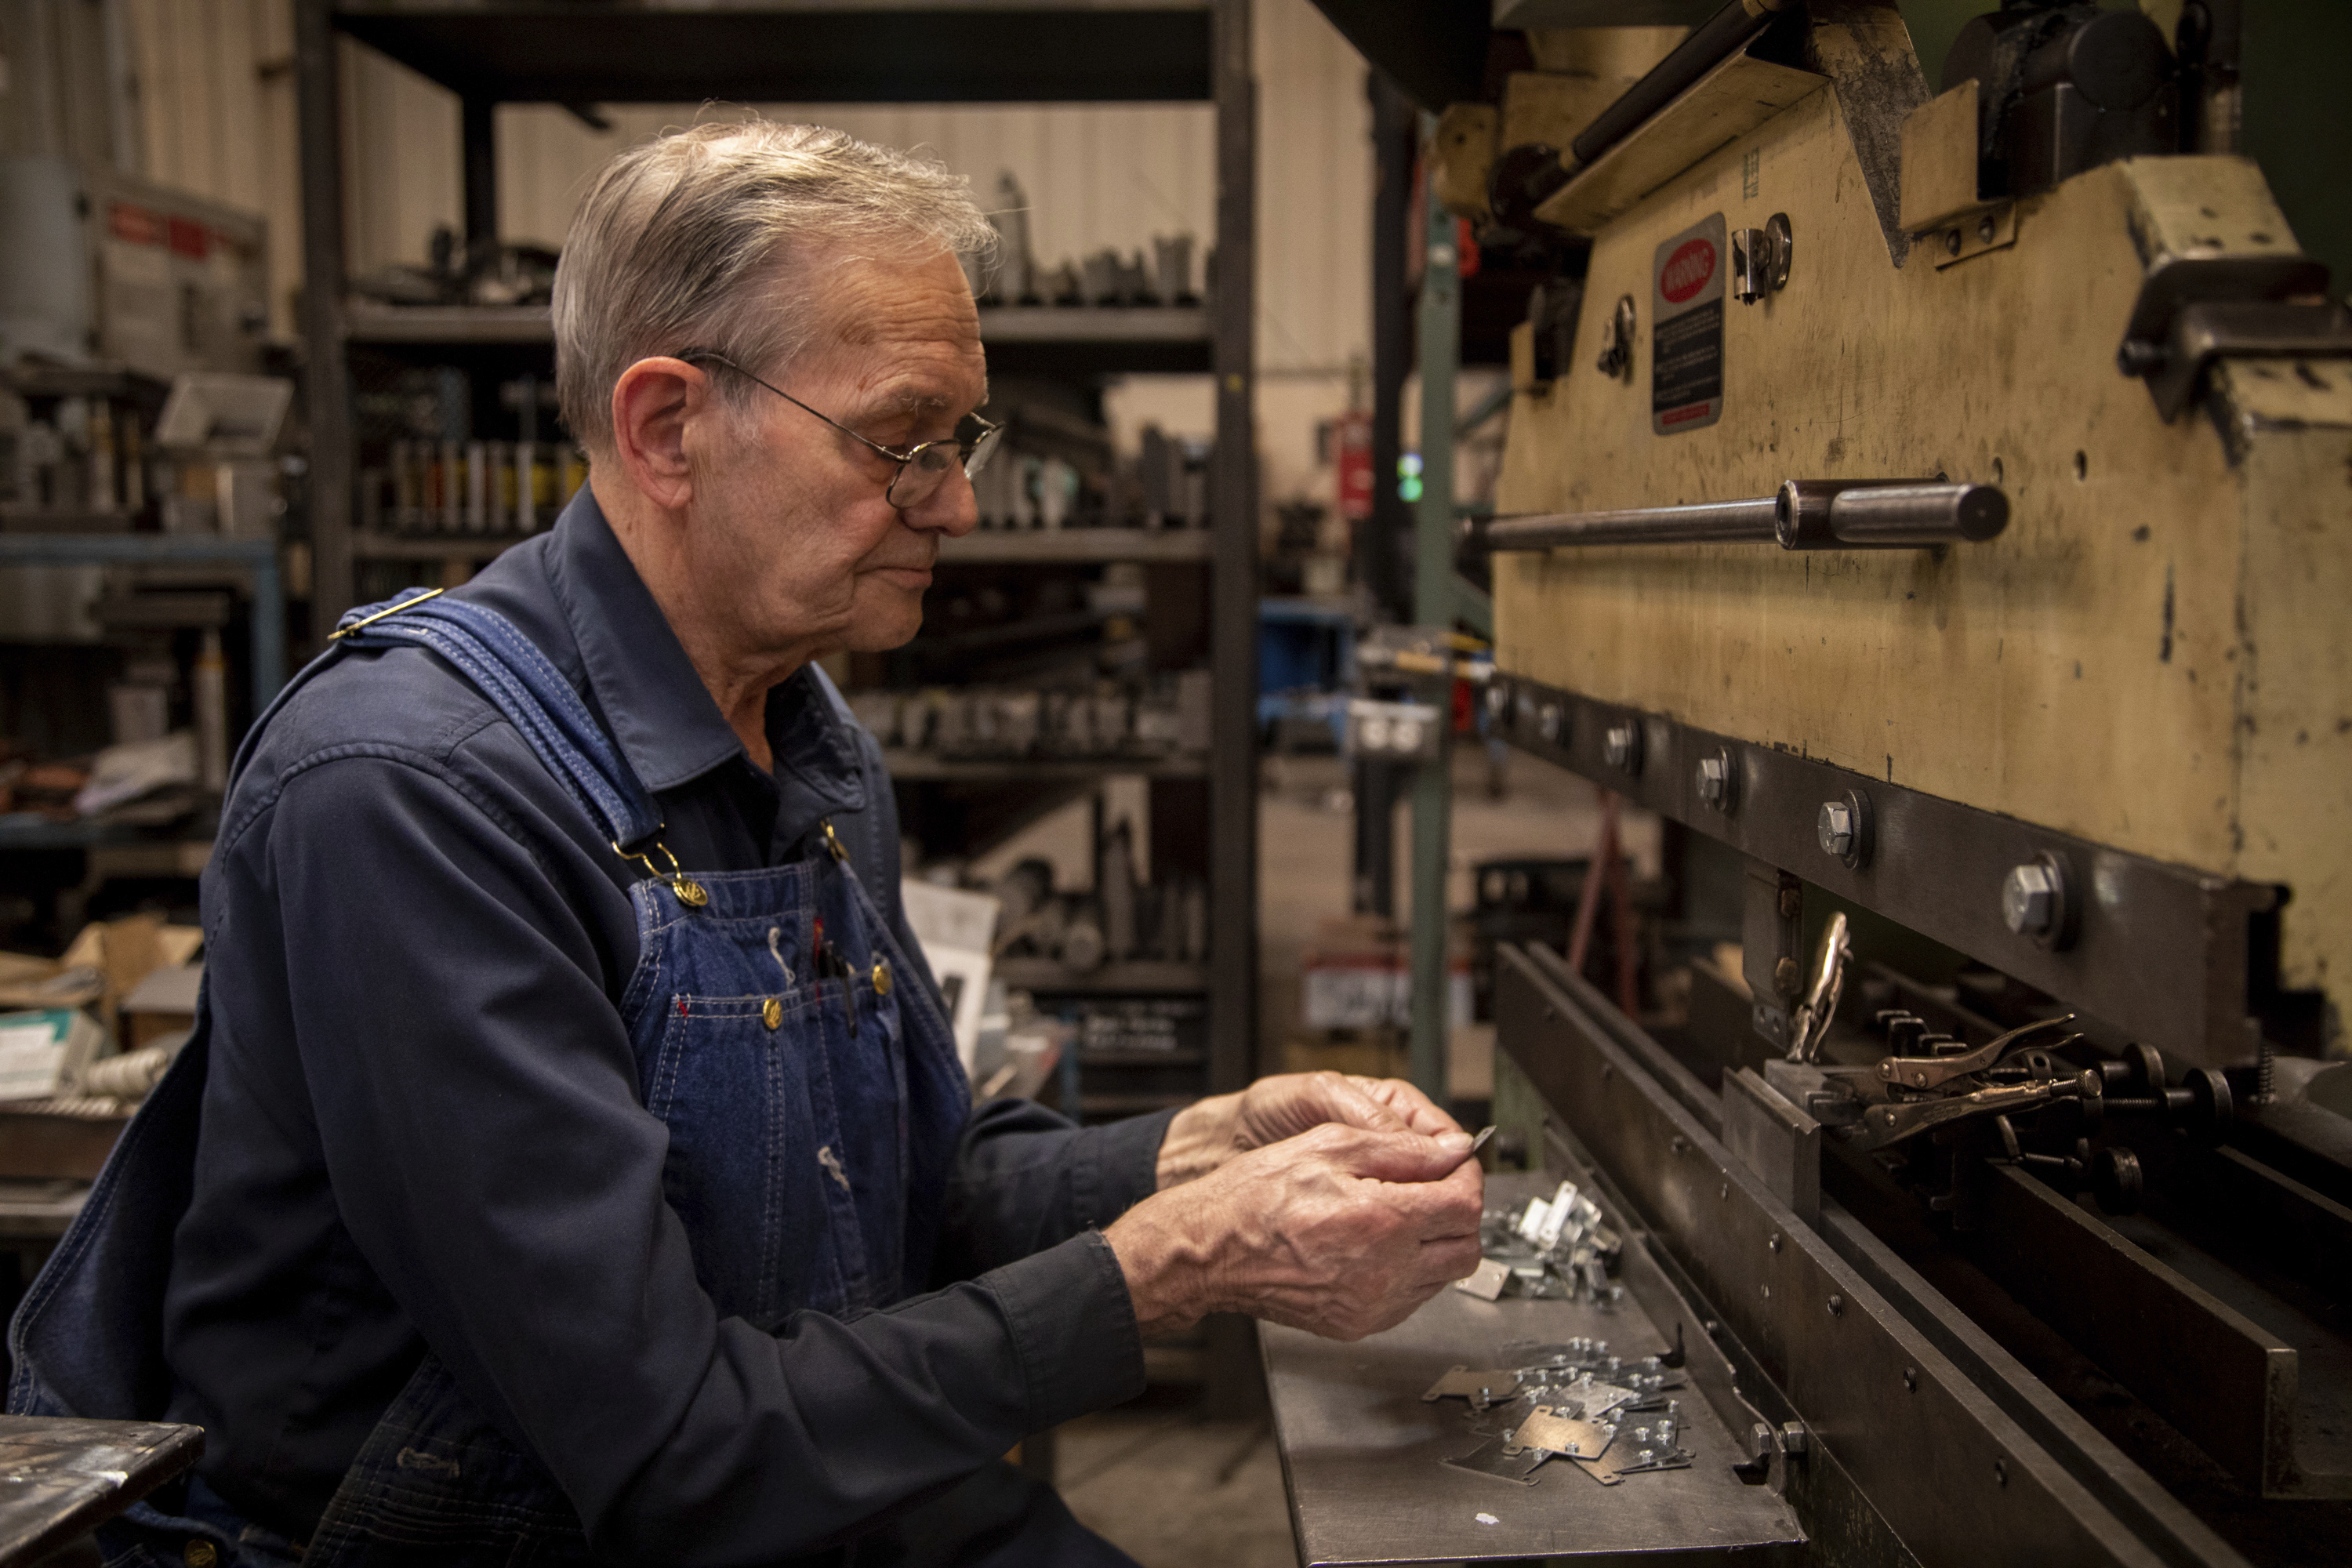 For 60 Years This Utah Man Has Worked Four 10 Hour Days On His Feet Operating Presses Lasers And Other Machinery His Boss Says We D Be Lost Without Him